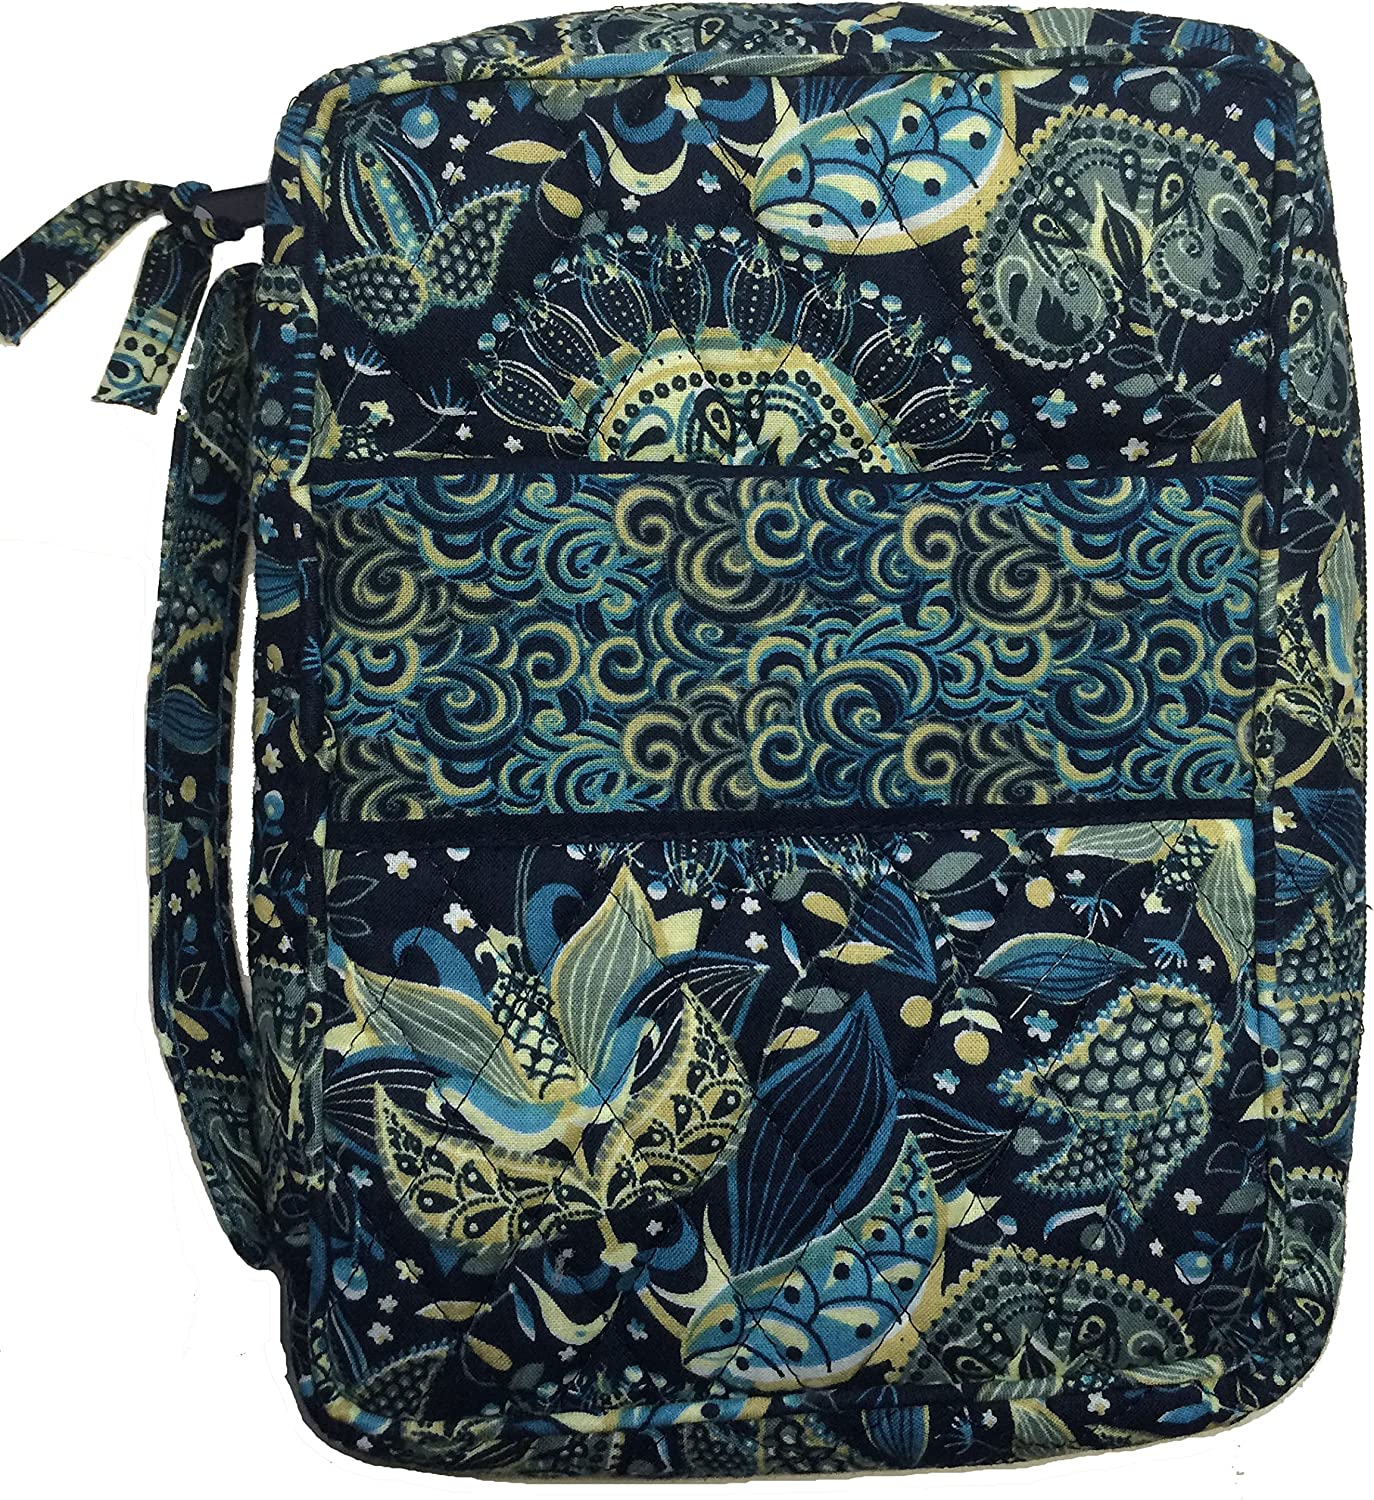 DIWI Quilted Bible Cover Large Sizes 10 C X Fashionable 2.75 7 Alternative dealer Inches Book